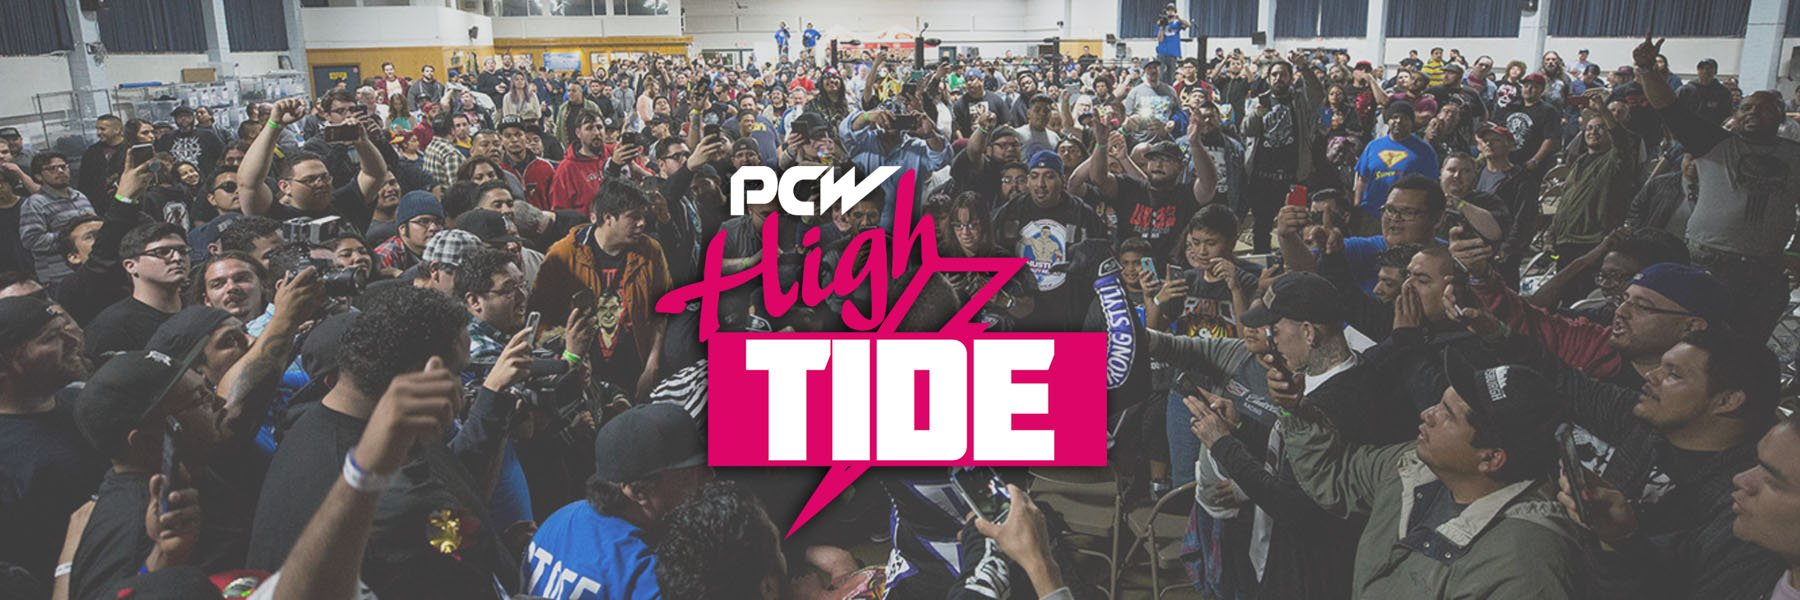 PCW: HIGH TIDE (3/24/17) SUBSCRIBE $4.99/mo - RENT $2.99 - $BUY $9.99